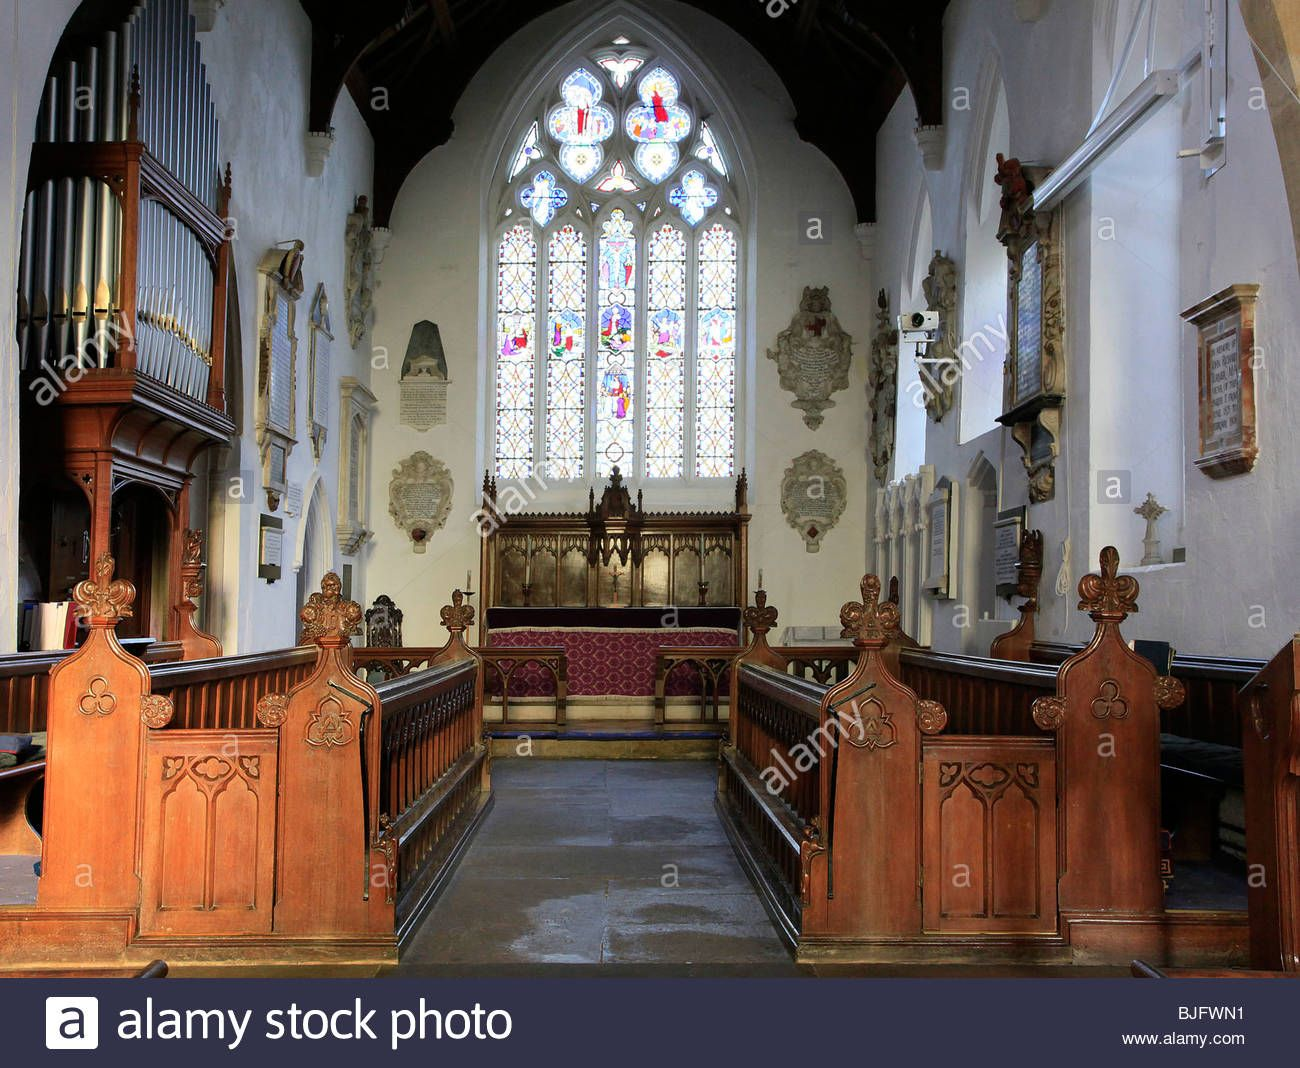 Interior Of A Typical English Country Church In Wiltshire England Stock Photo Royalty Free